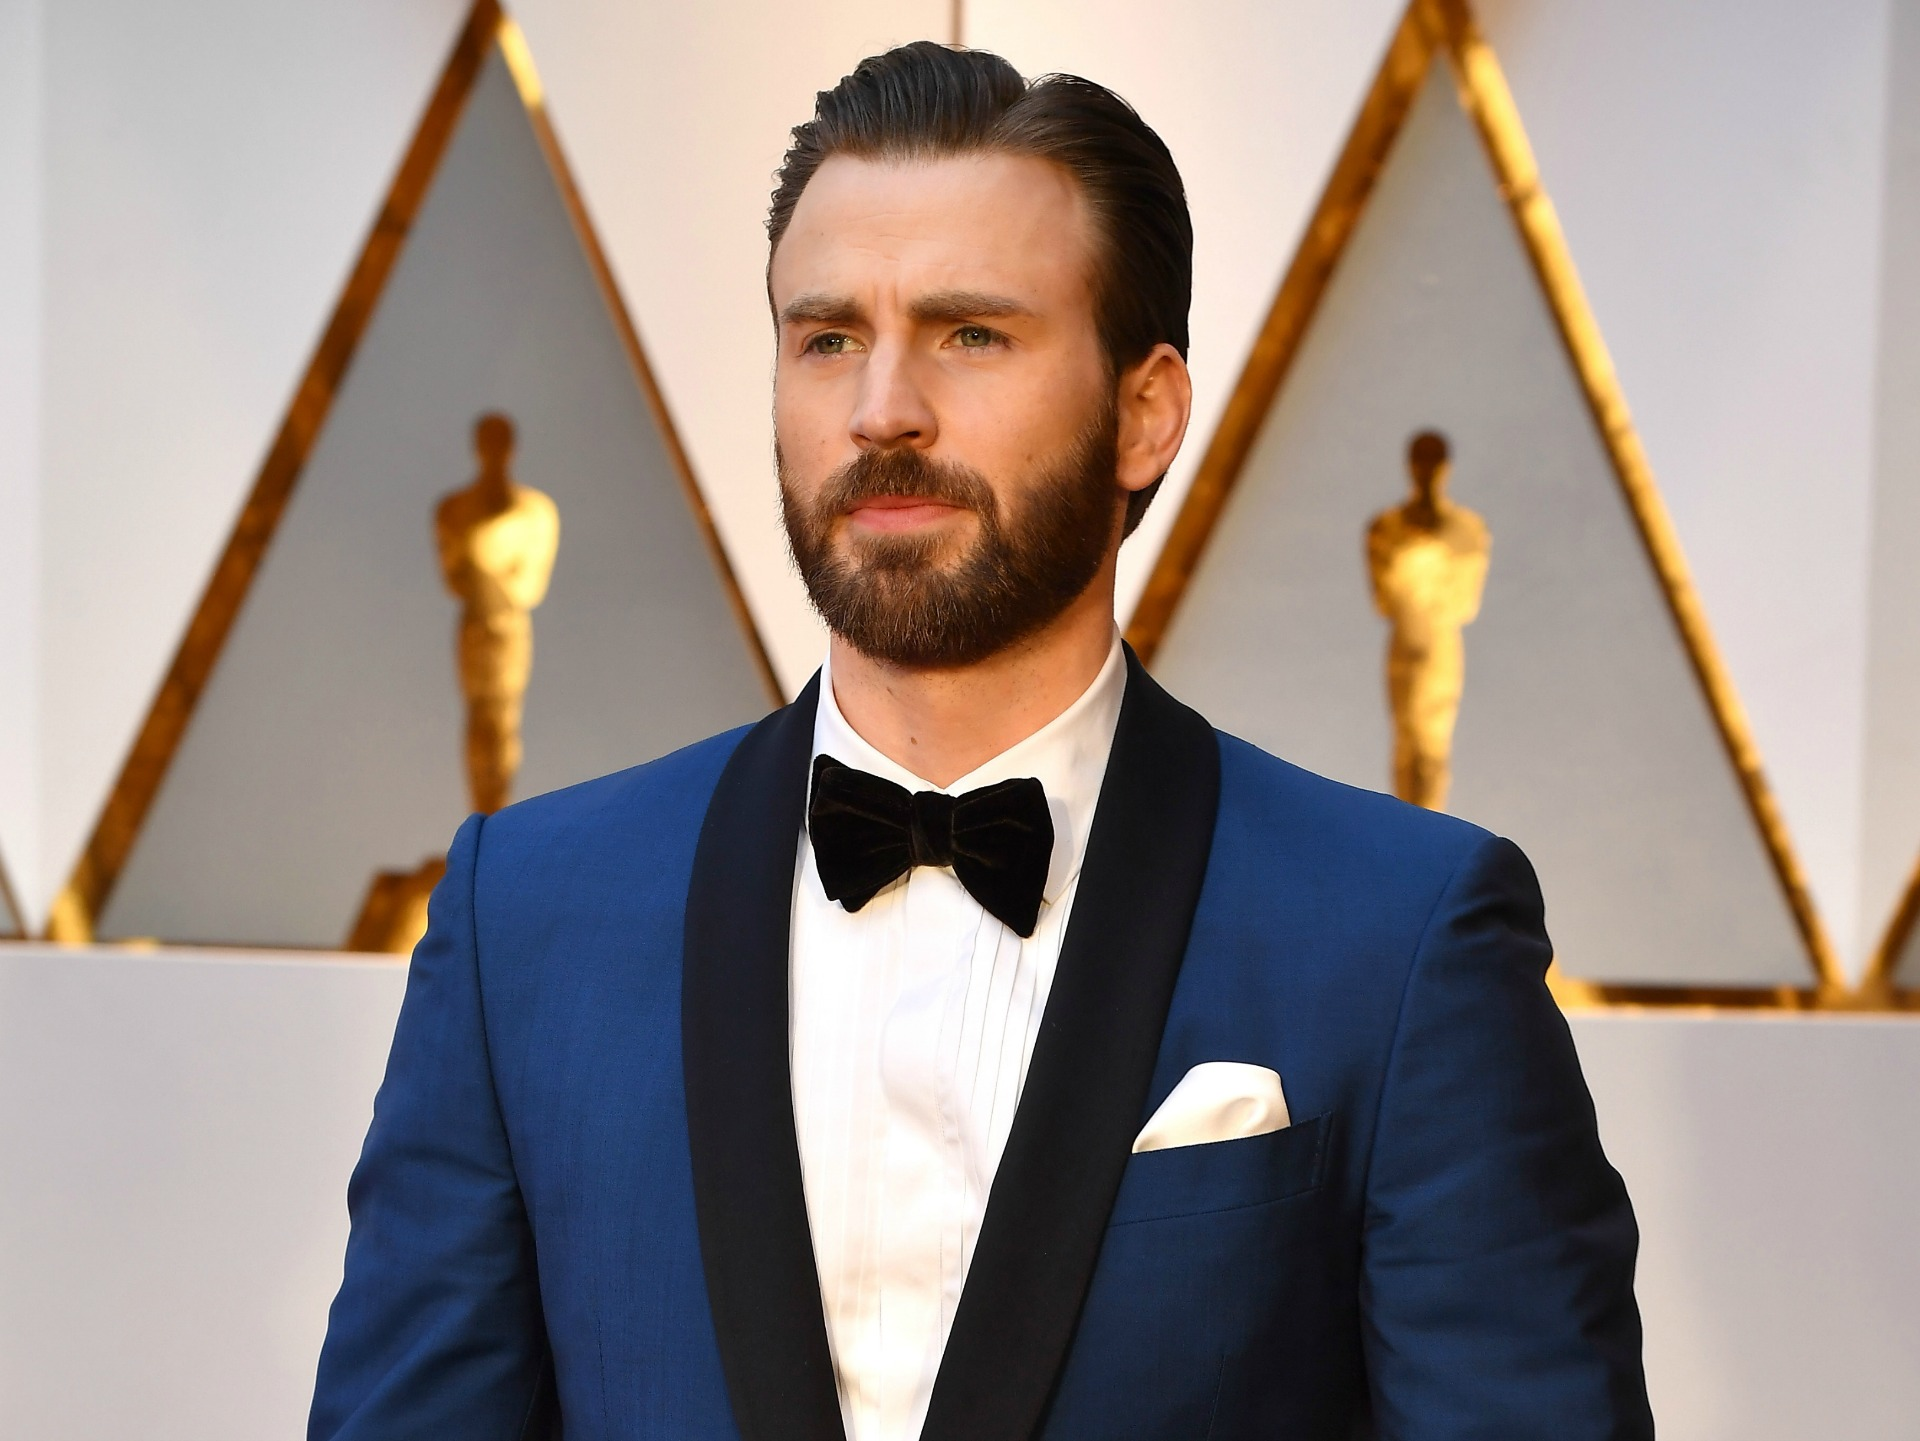 Chris Evans has joyous reunion with his dog after 10 weeks apart